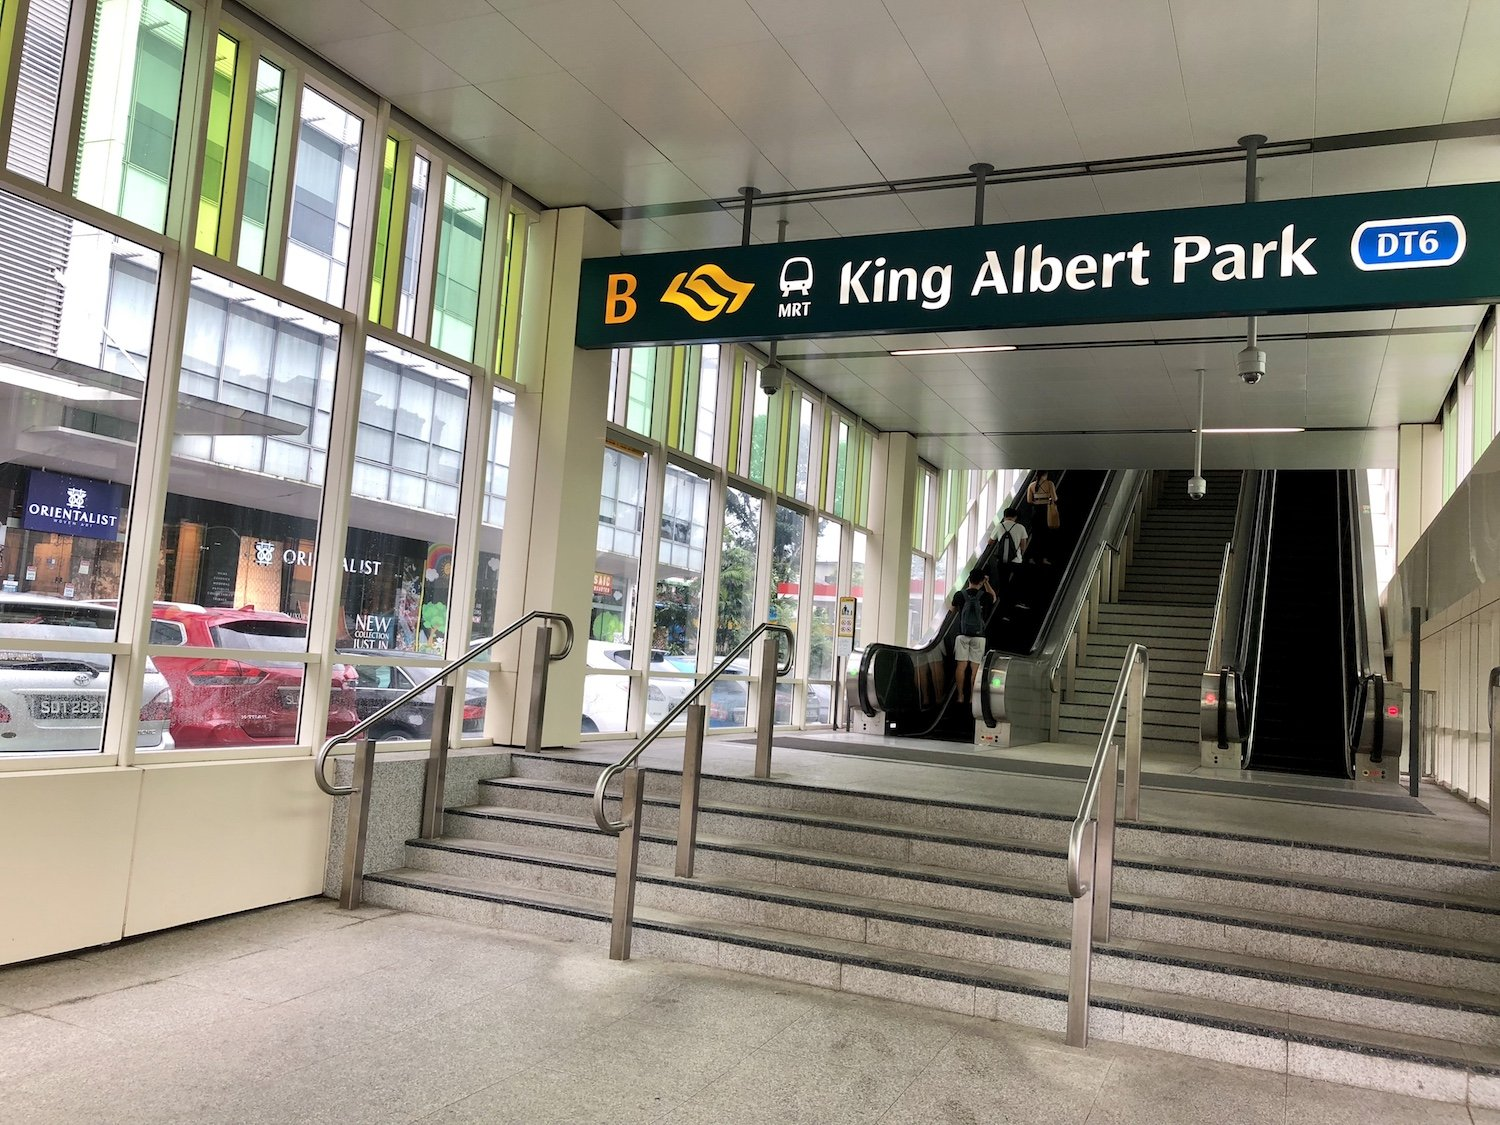 King Albert Park MRT is a five-minute walk away from Mayfair Modern